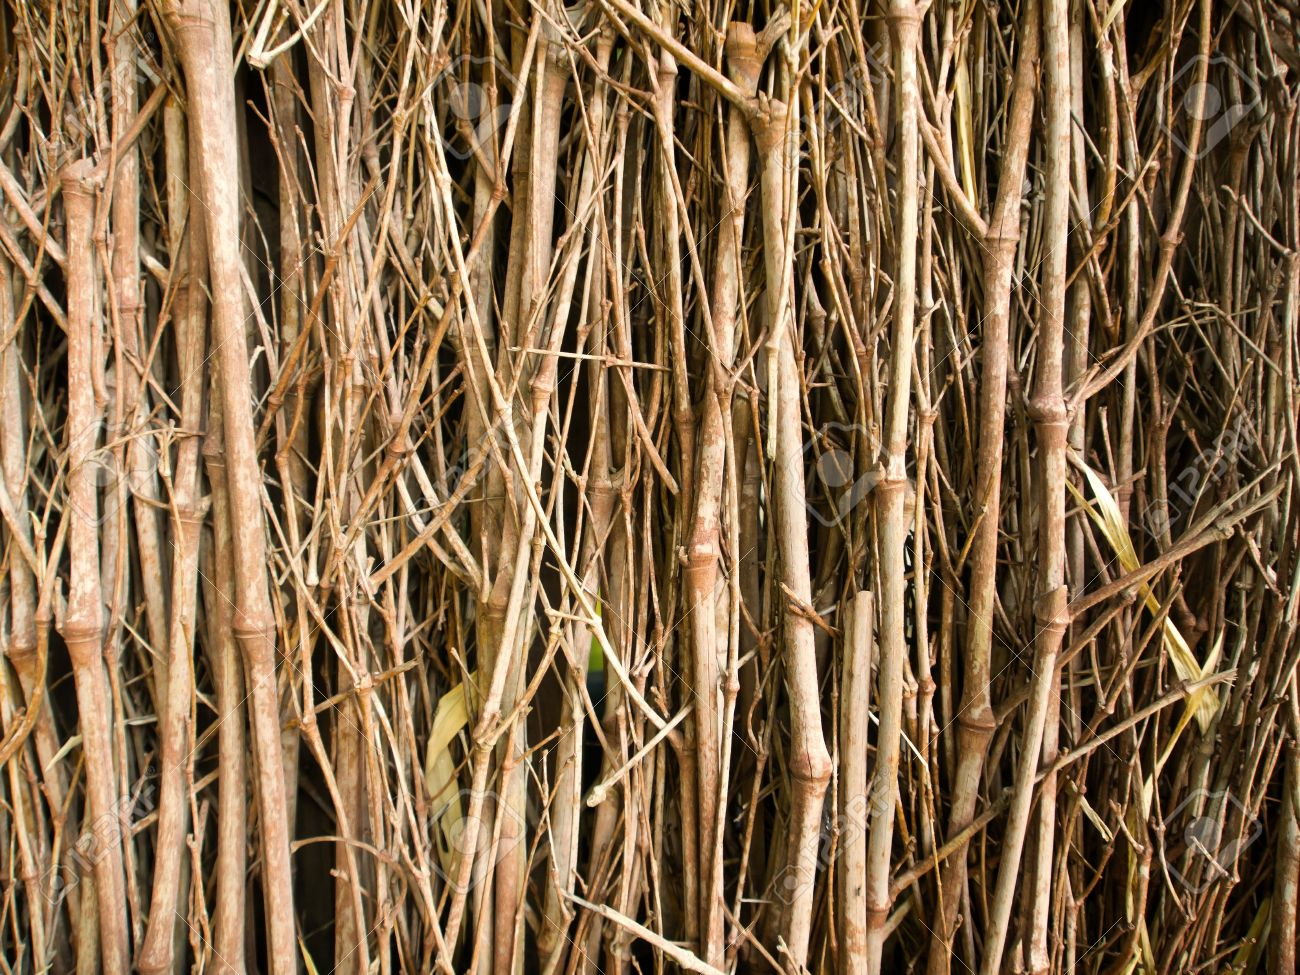 Dried Twigs And Branches Striped Wood Texture Pattern Background 1300x975